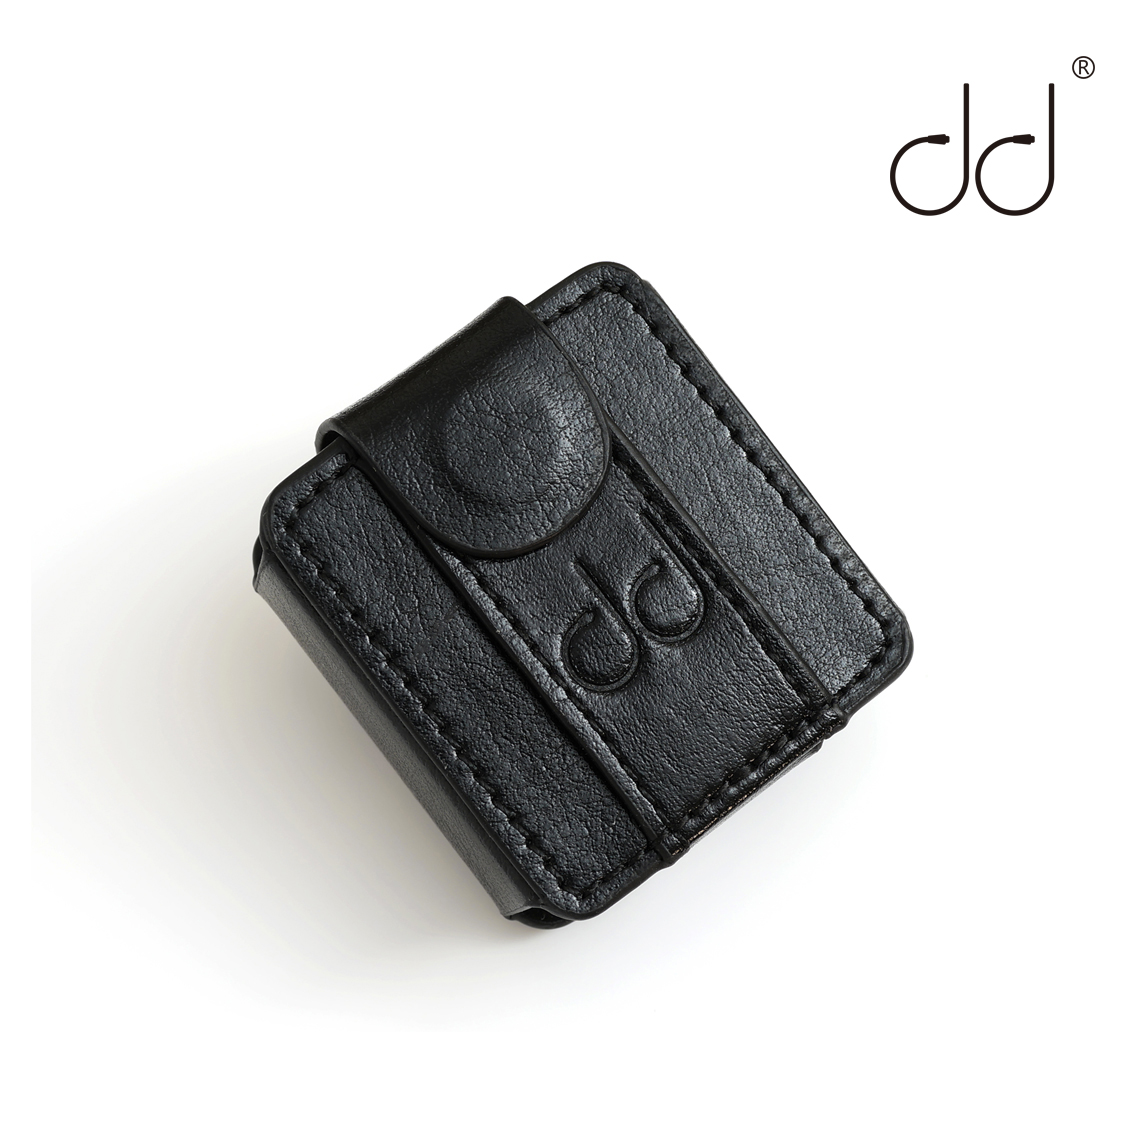 DD C-M5 Leather Case For FiiO M5 Music Player, DAP Leather Cover (with Elastic Loop Strap) Black, Watch Band Use.